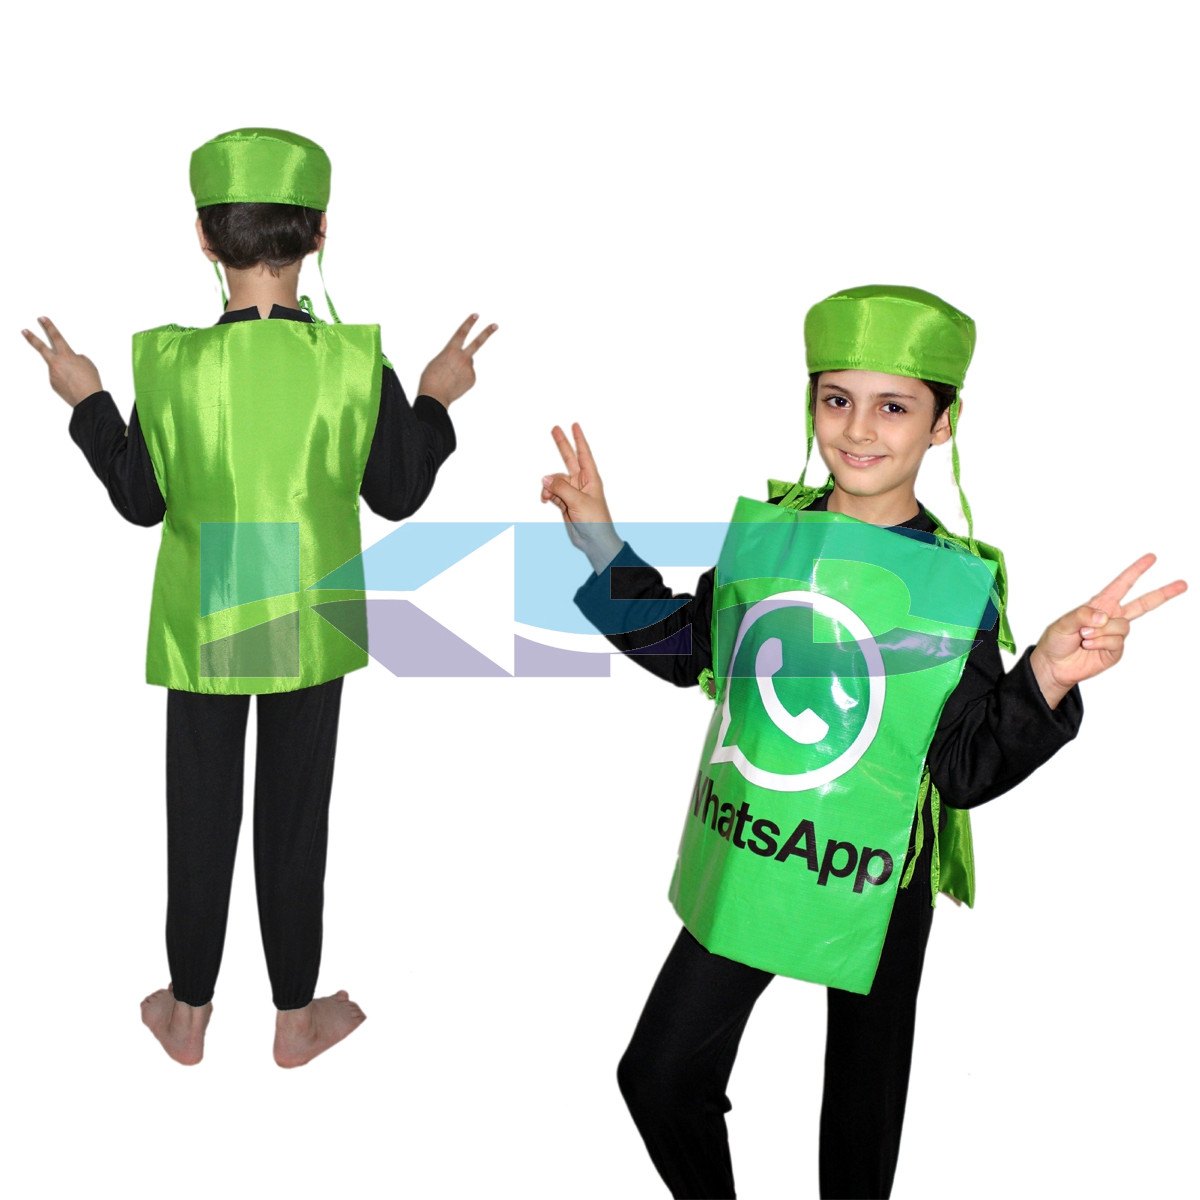 WhatsApp Social Networking Application Costume,Object Costume for School Annual function/Theme Party/Competition/Stage Shows/Birthday Party Dress